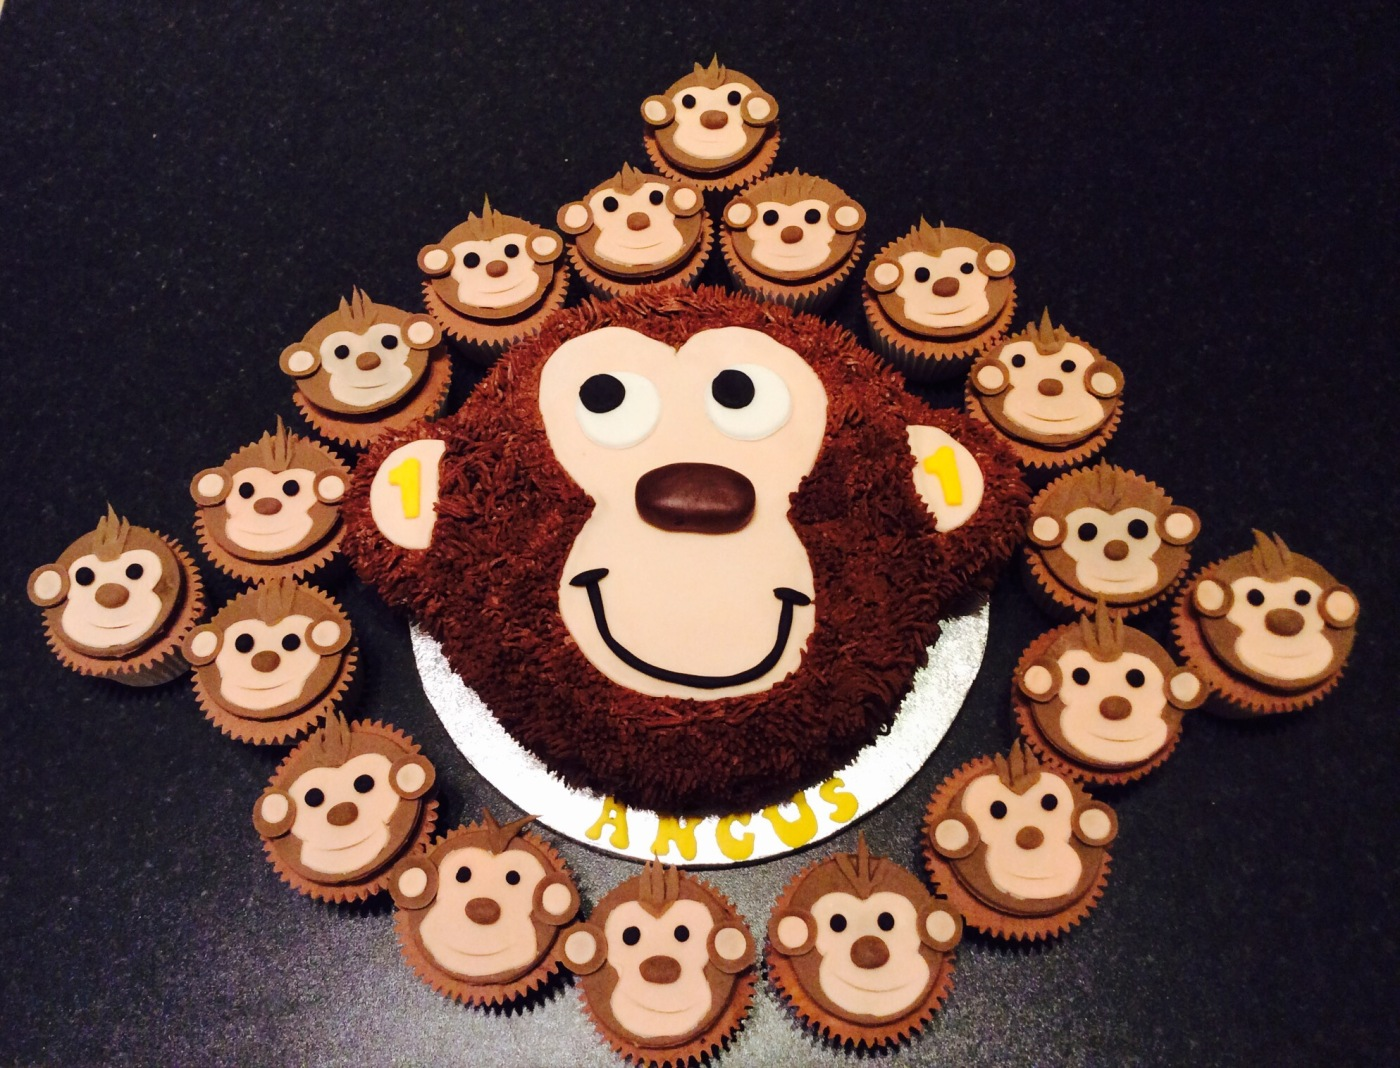 Monkey Cake by Lizzie